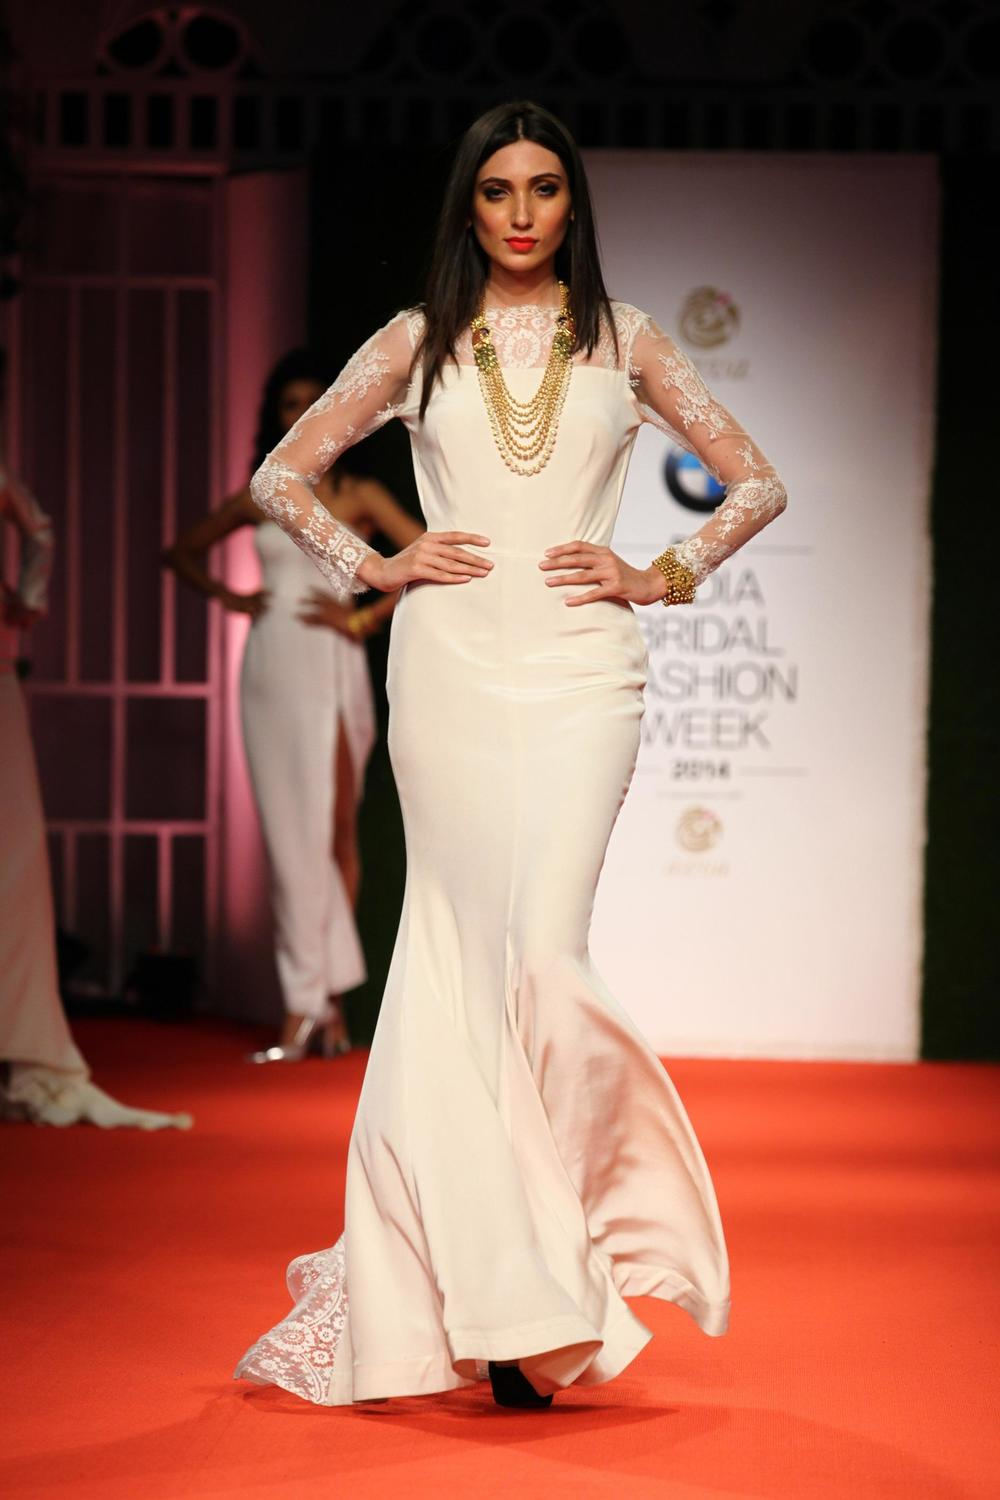 Azva Presents Gold Jewellery in its Most Elegant and Glamourous Avatar at BMW India Bridal Fashion Week 2014 in association with AZVA at DLF Emporio.jpg